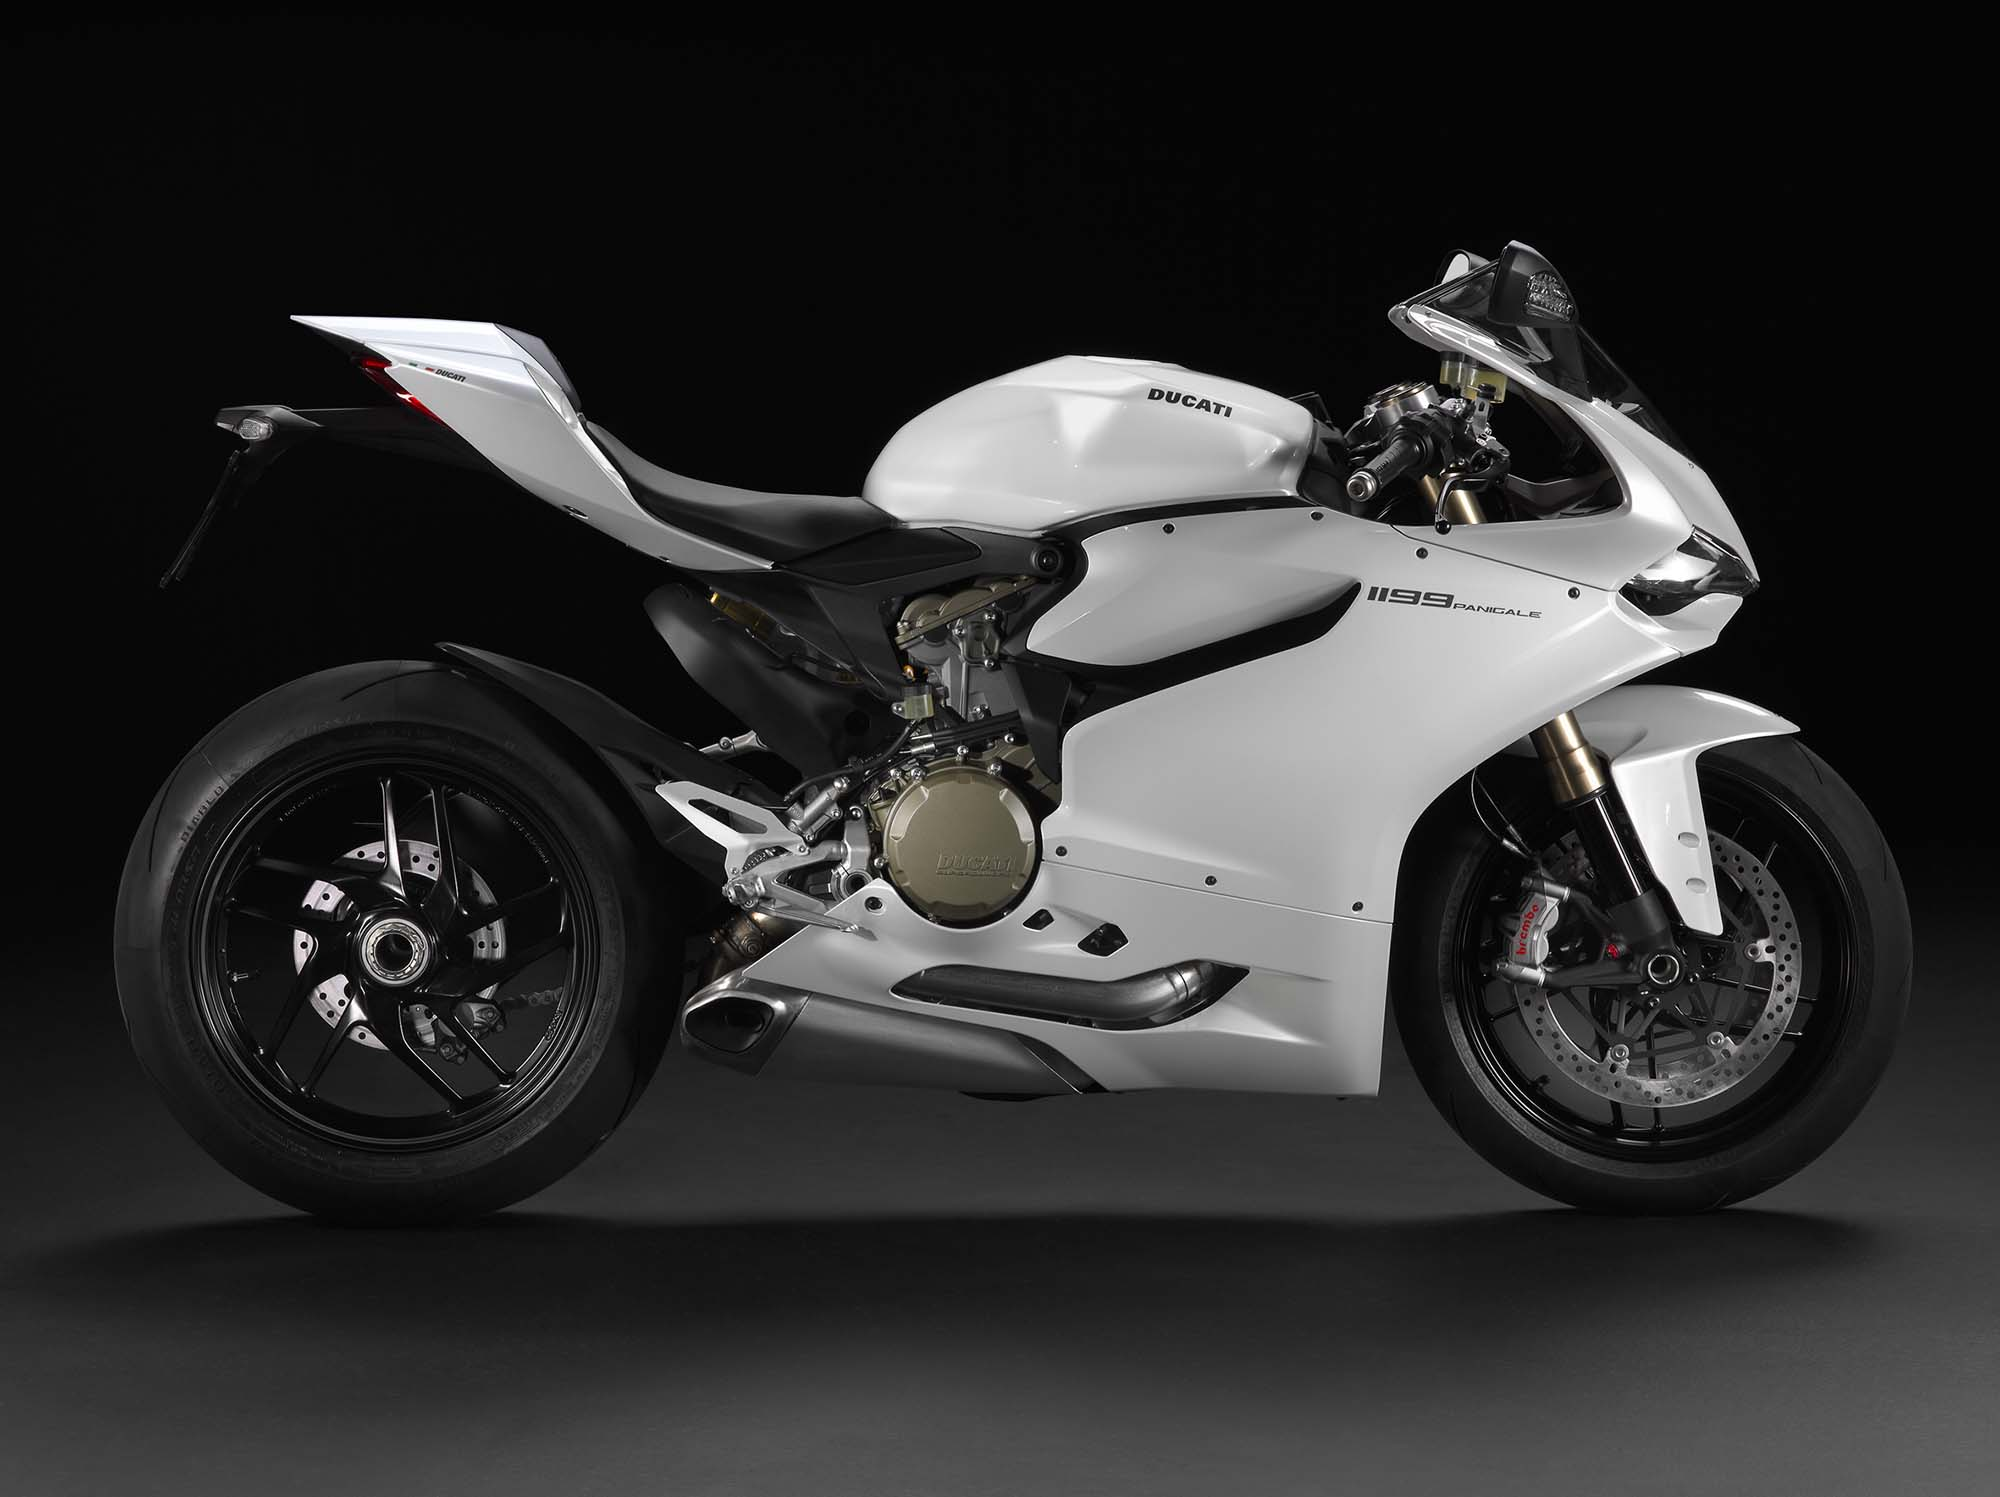 http://www.asphaltandrubber.com/wp-content/uploads/2012/10/2013-Ducati-1199-Panigale-arctic-white-04.jpg